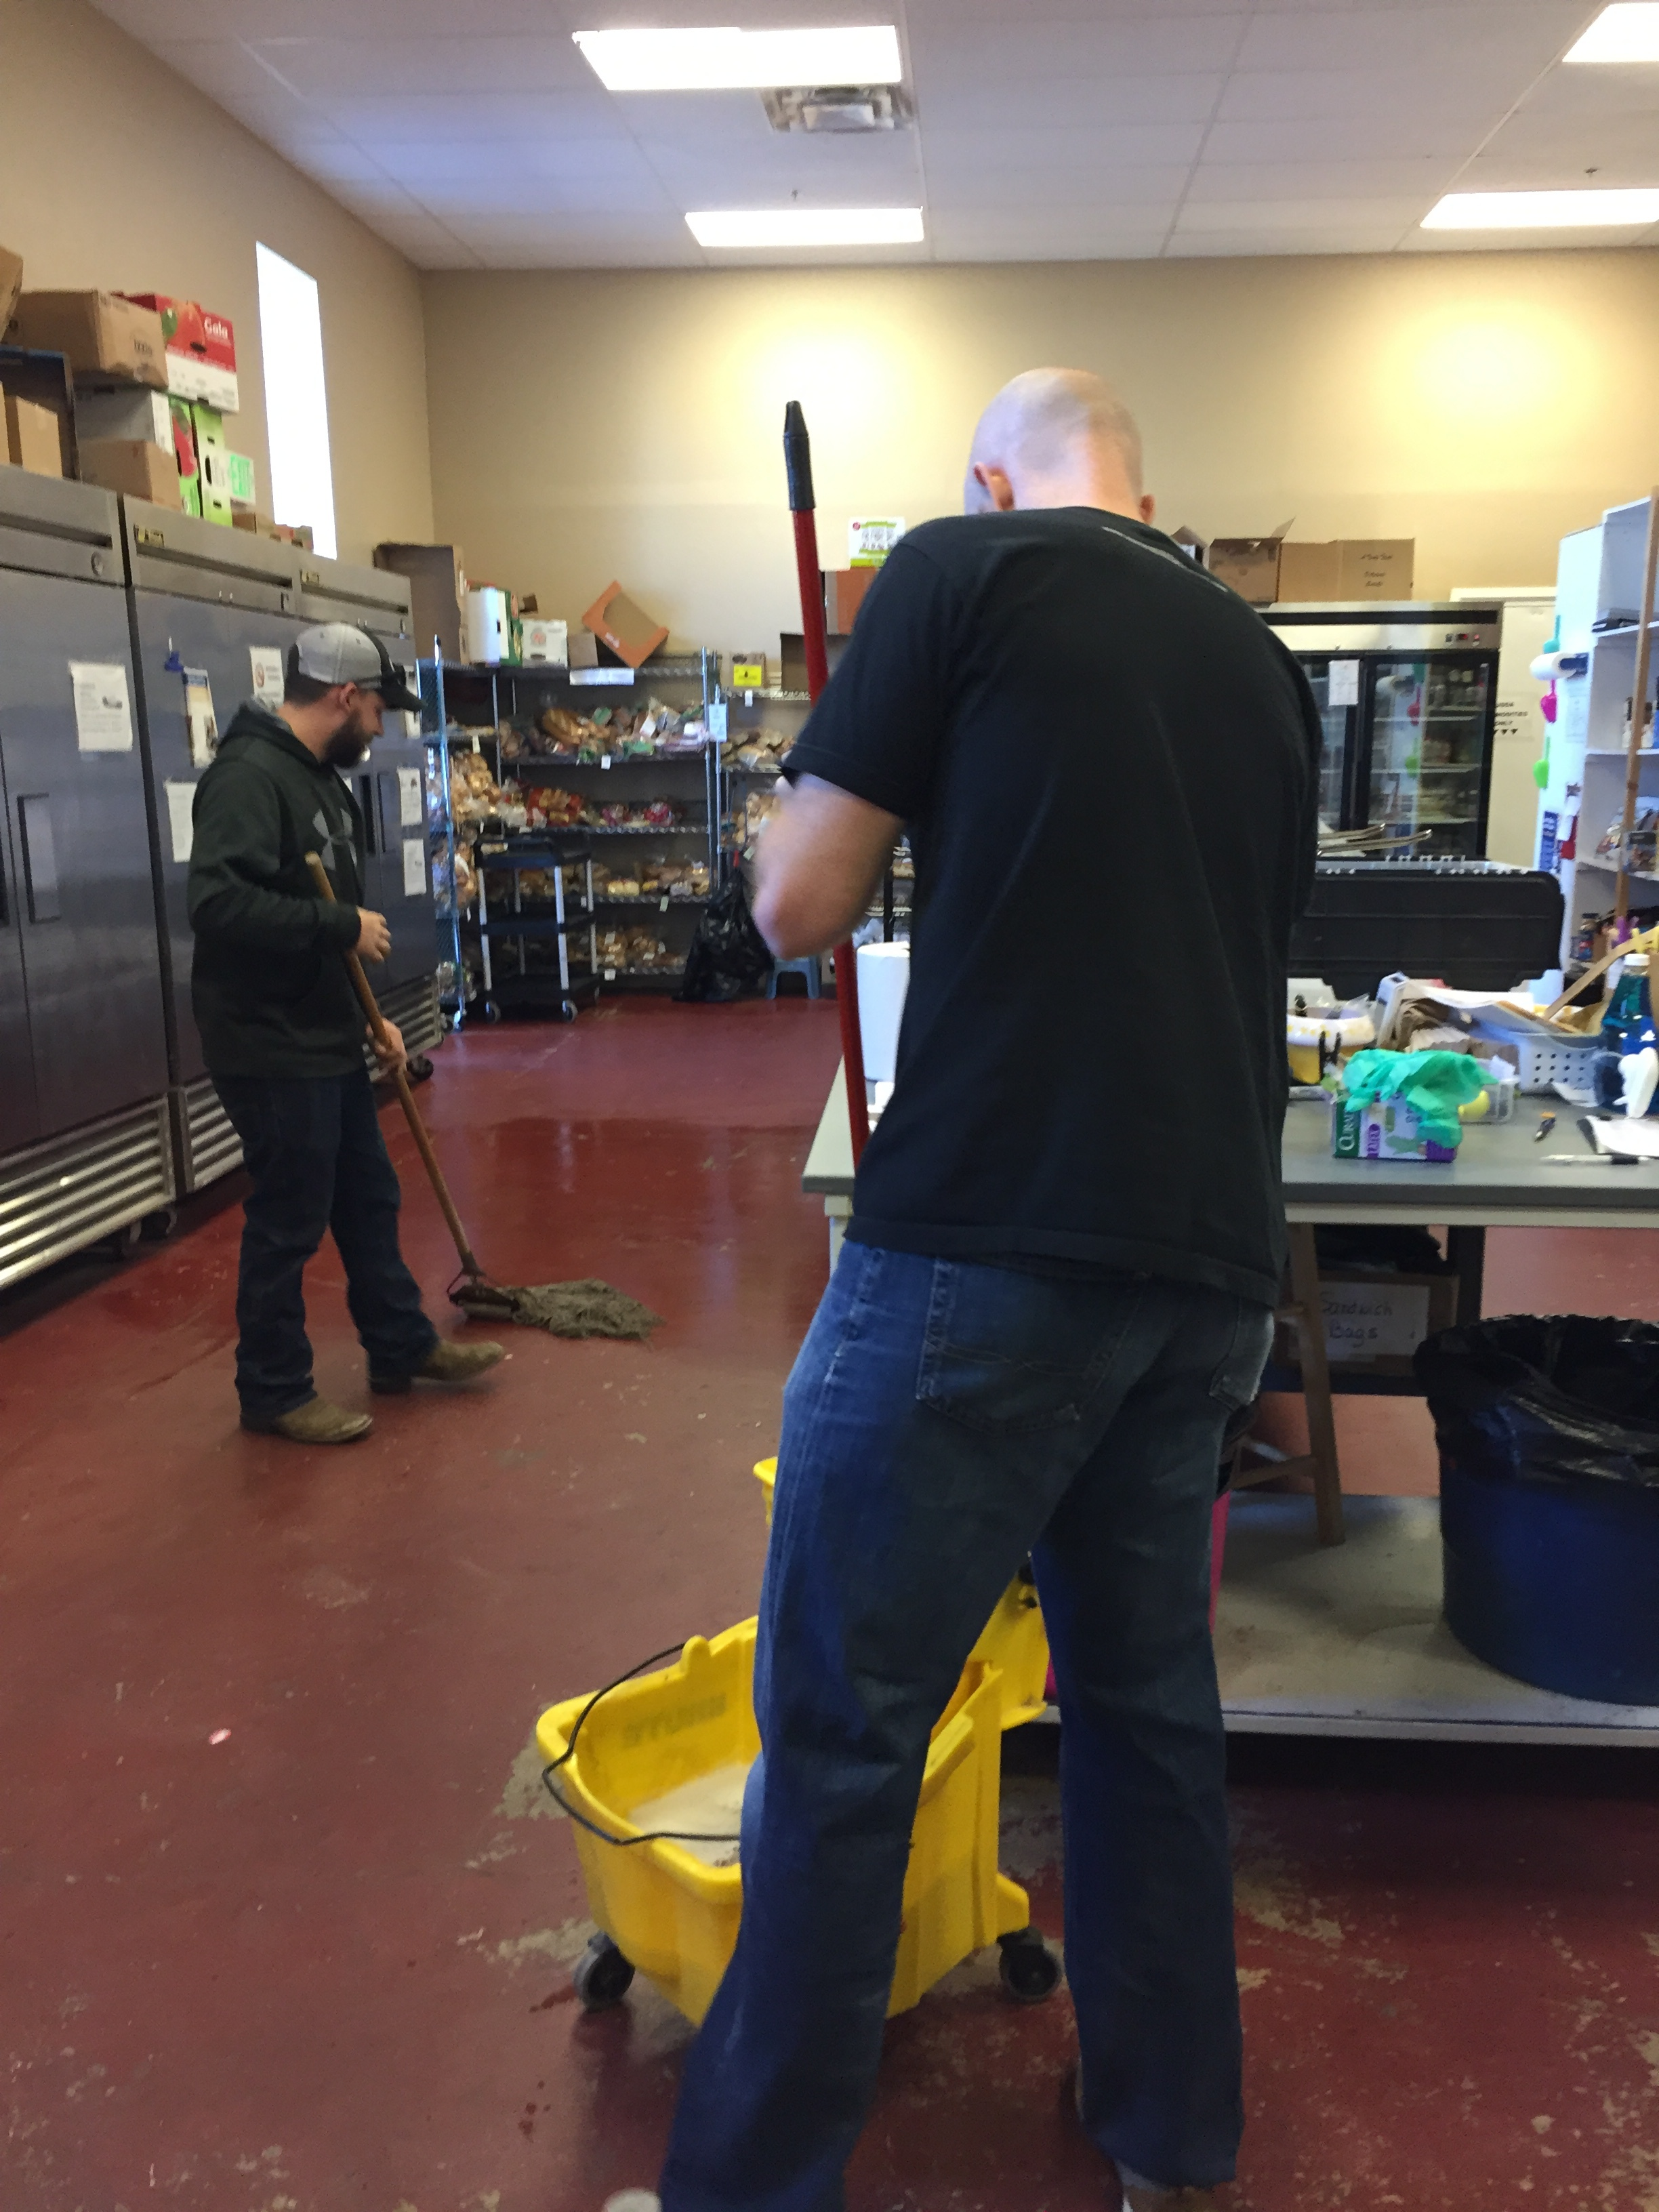 Cleaning The Food Bank - The food bank feeds approximately 80 homeless people per month